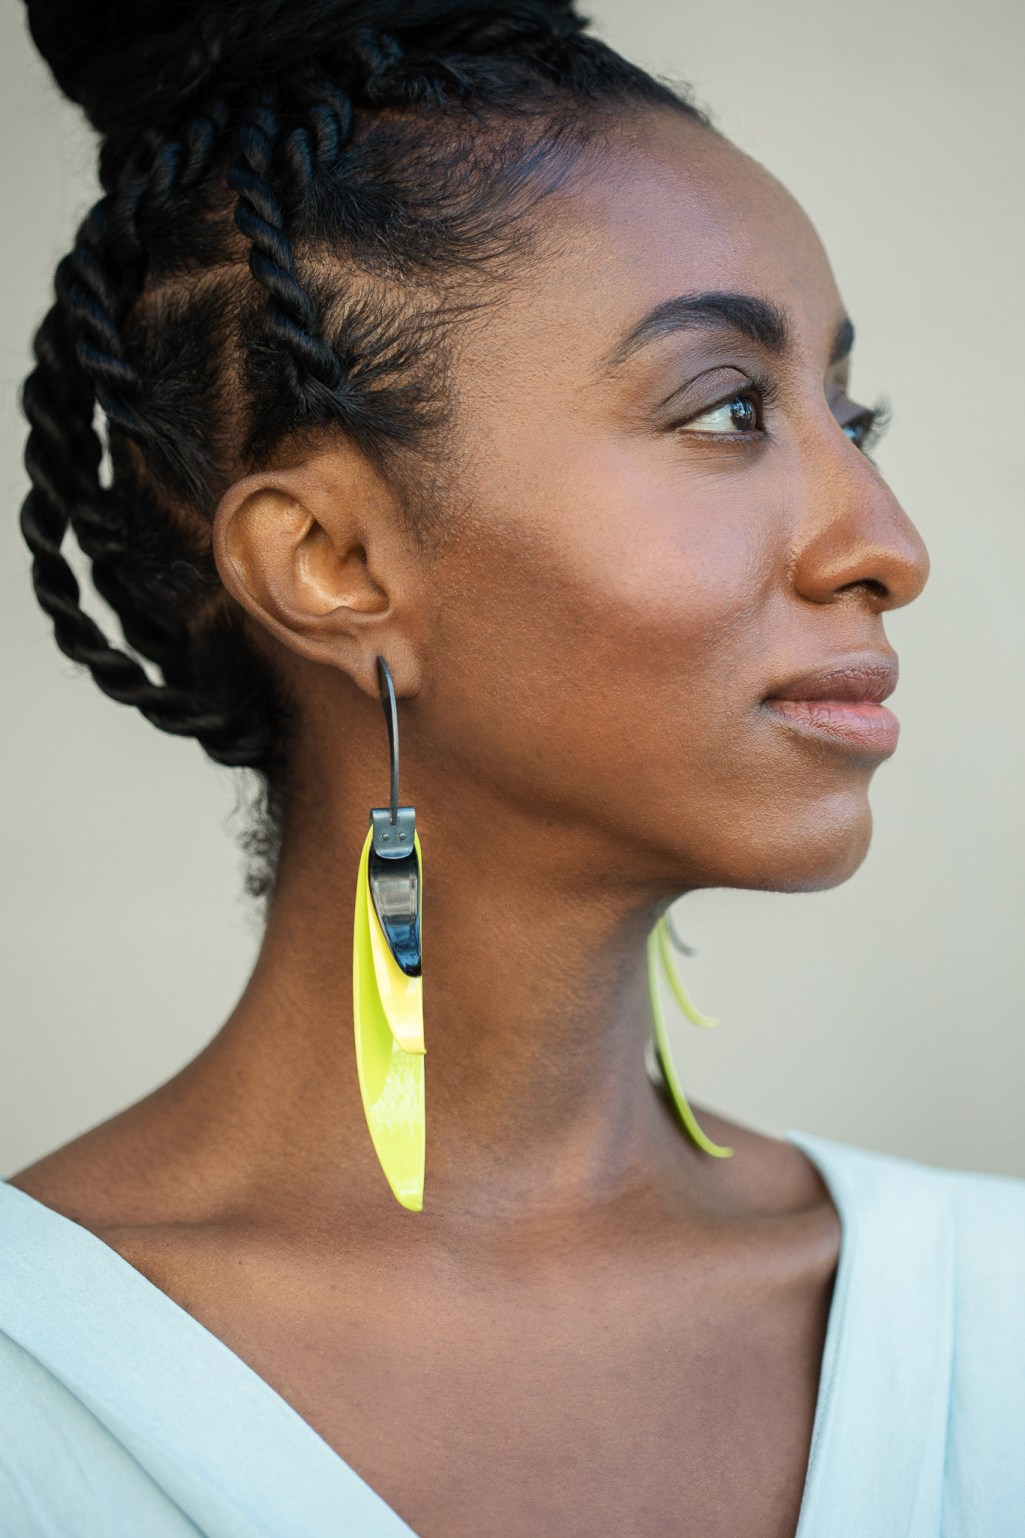 Jewelry photography with yellow metal earrings modeled by Kalkidan Gebreyohannes in lifestyle shoot by Ella Sophie. Oakland